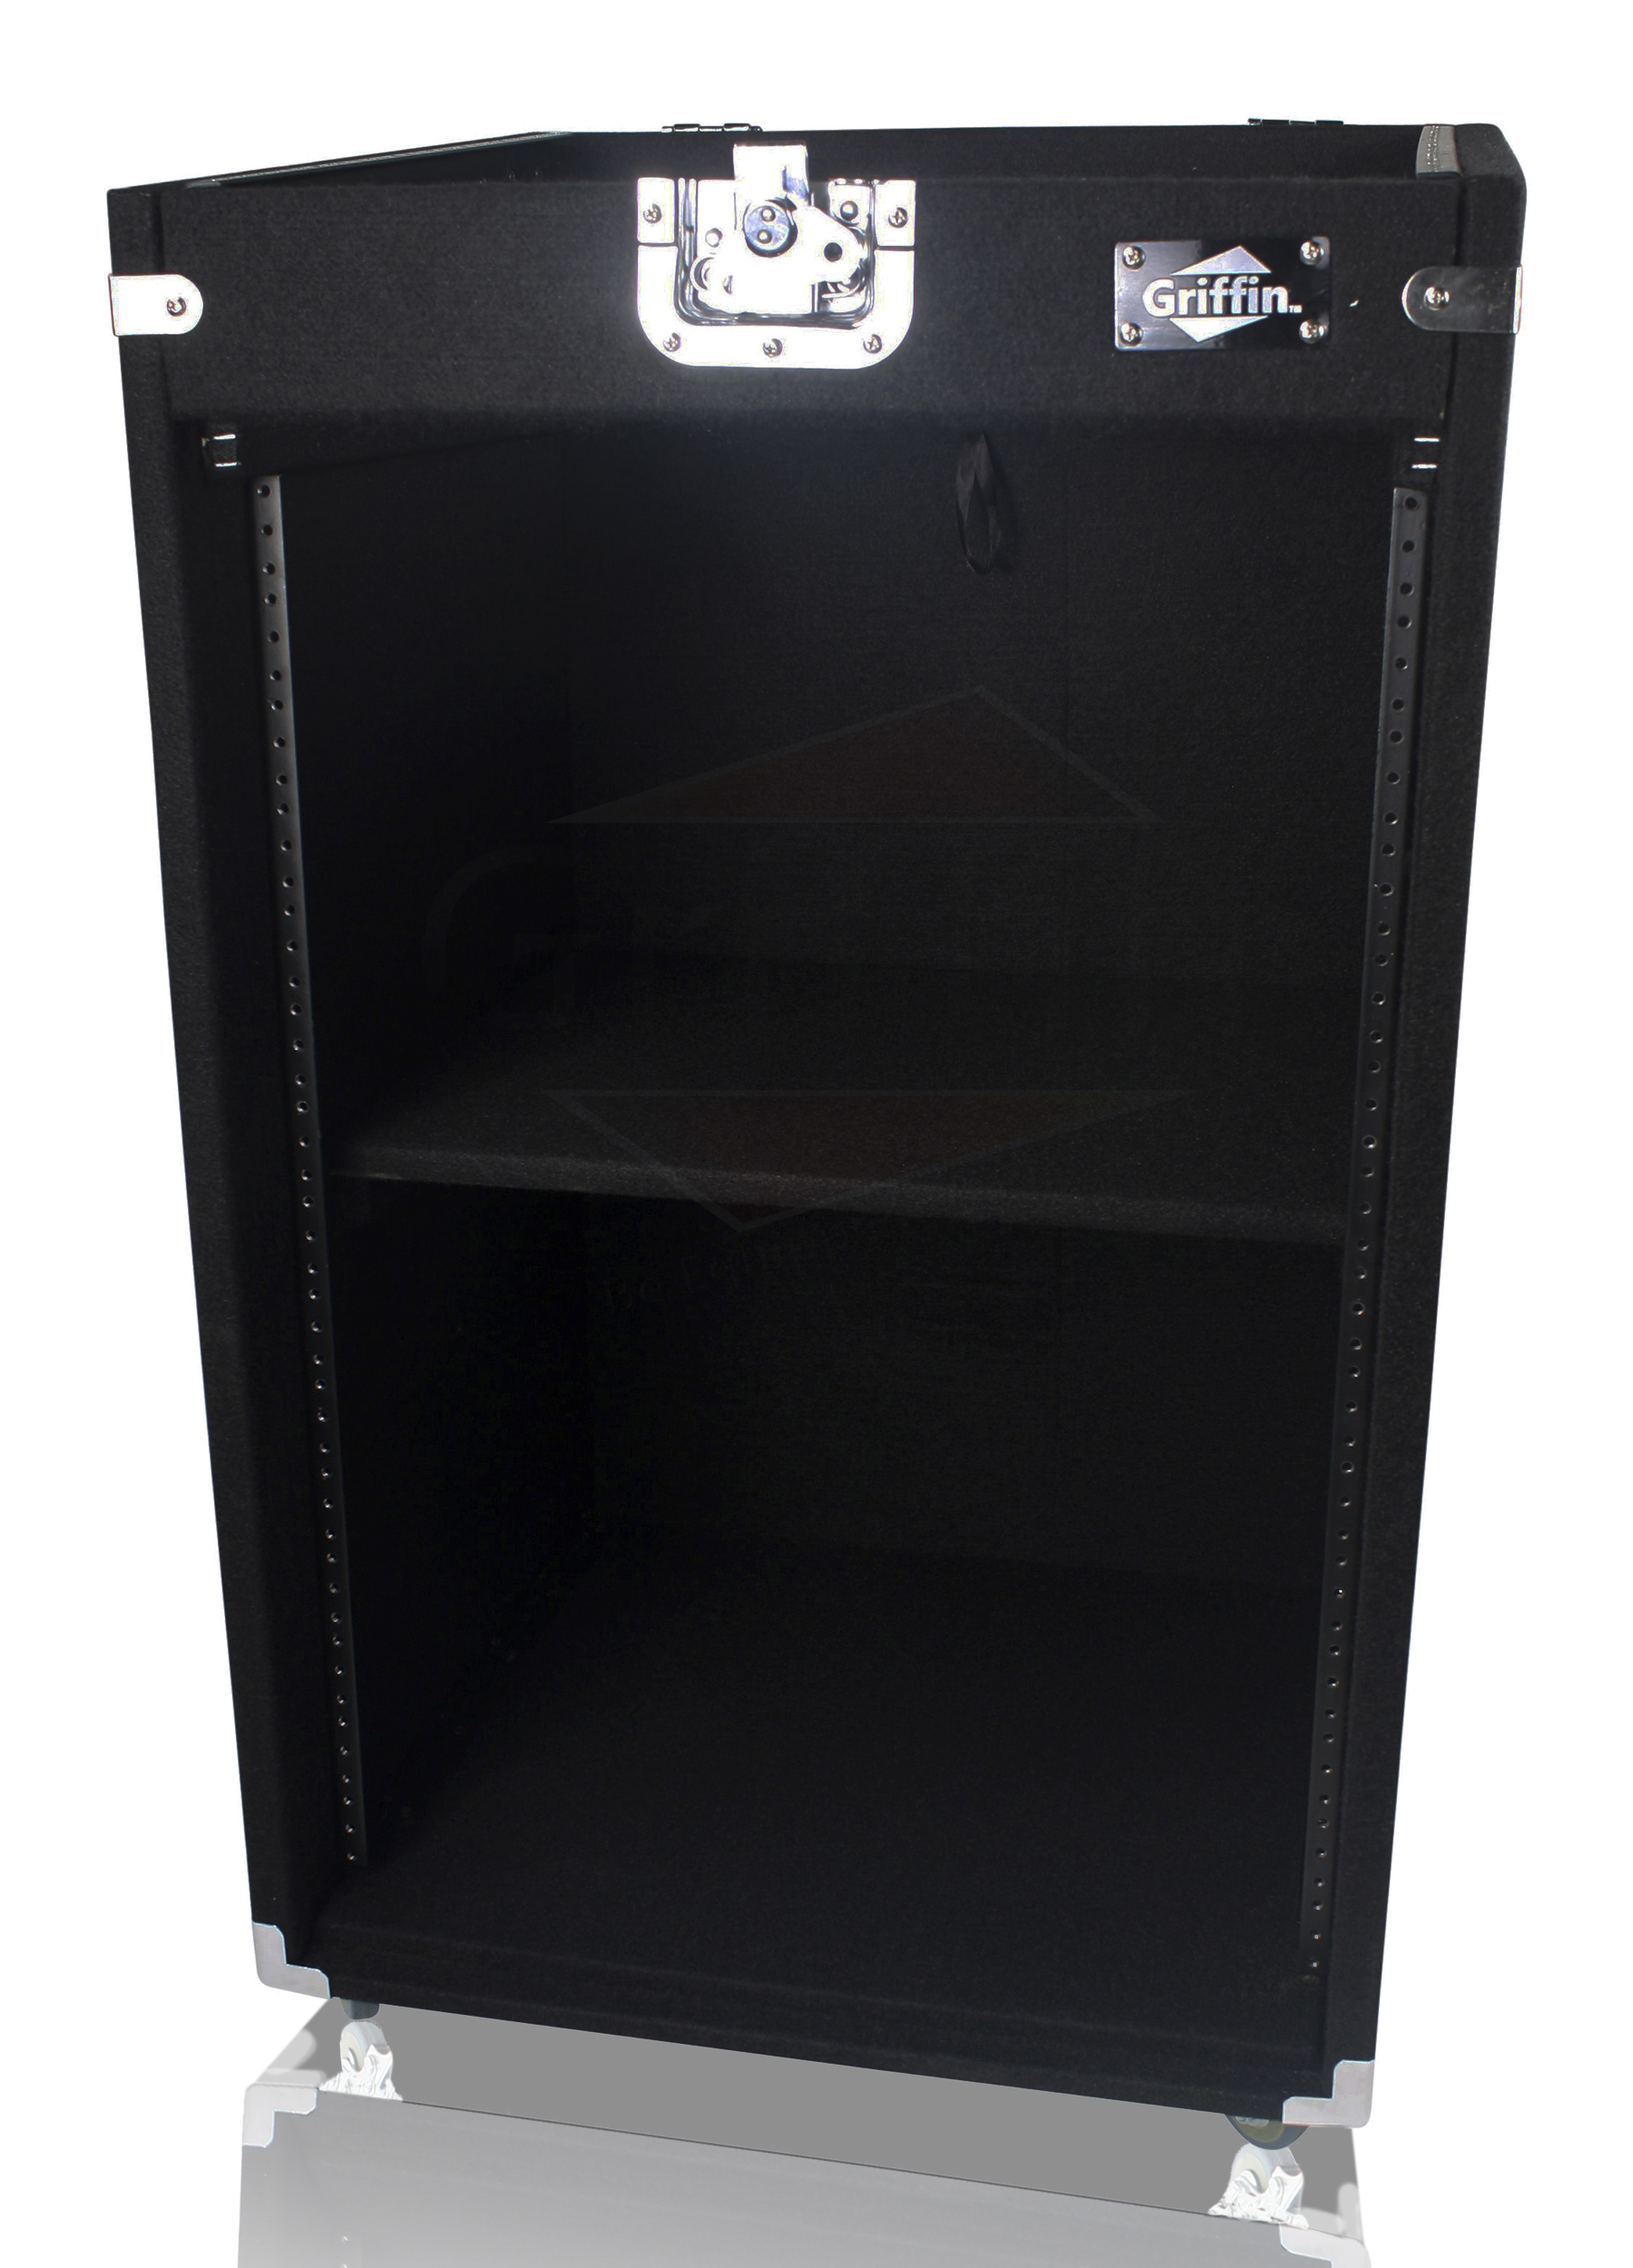 Rack Mount Cabinet Flight Case Studio Mixer Dj Pa Cart Stand Music Gear Stage Ebay